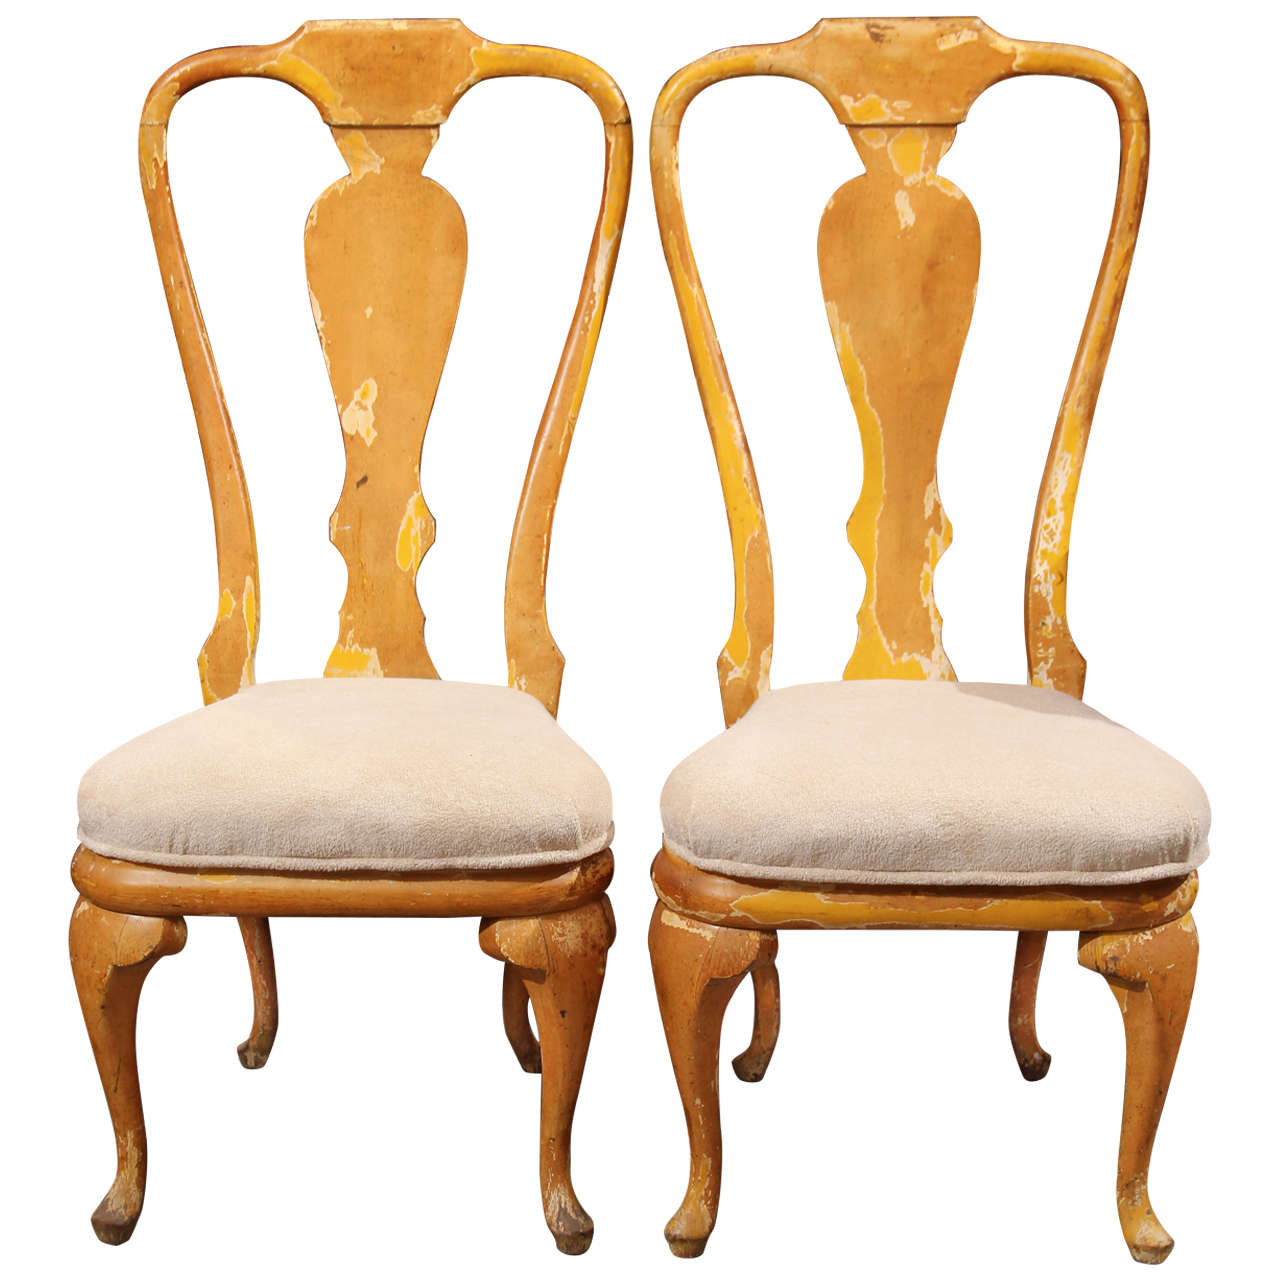 Curvy Painted Wood Side or Dining Chairs For Sale